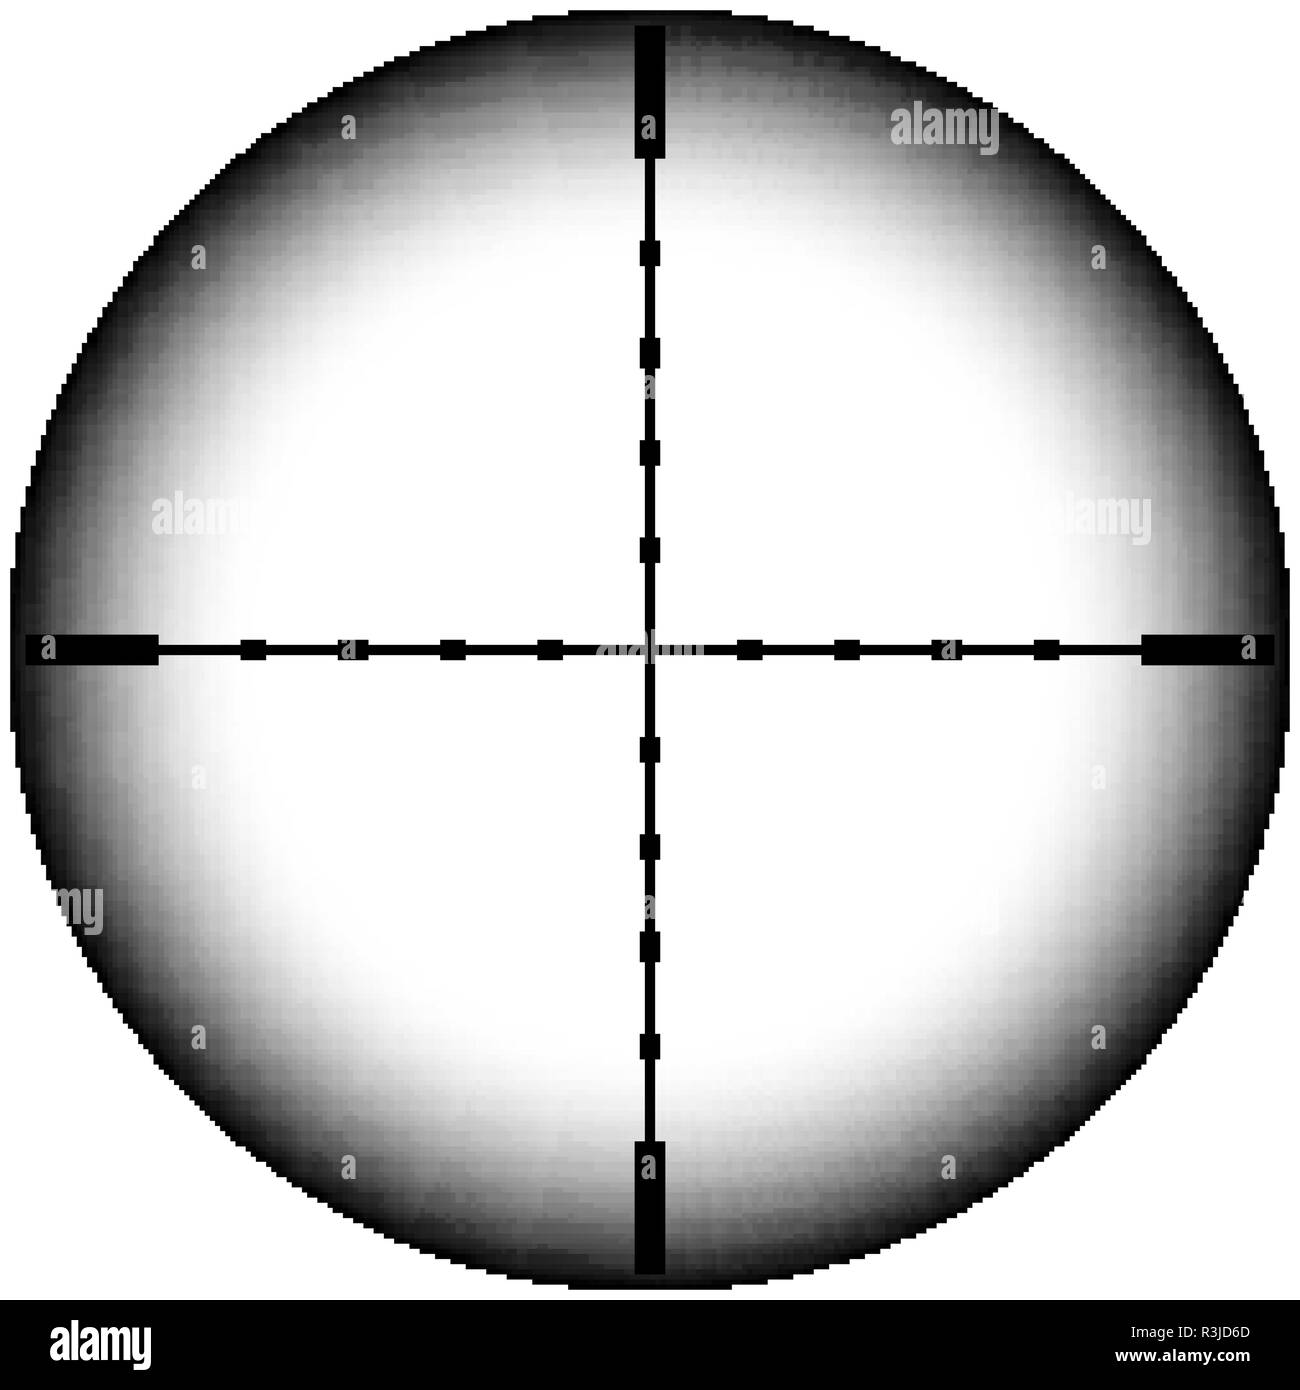 Collimator sight icon. Military sniper rifle target crosshairs Stock Vector